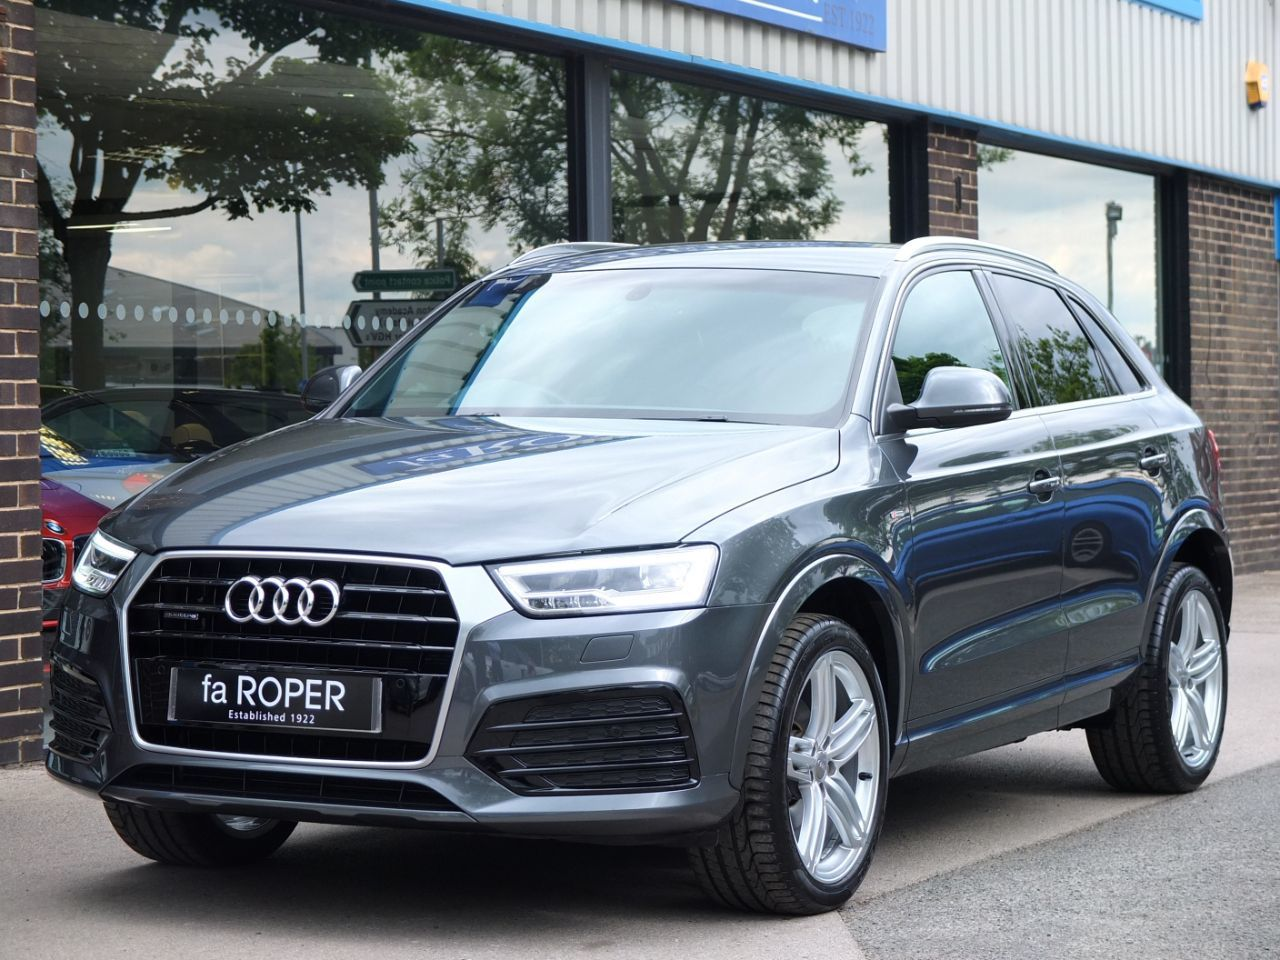 Audi Q3 2.0 TDI quattro S Line Plus S tronic 150ps Estate Diesel Daytona Grey MetallicAudi Q3 2.0 TDI quattro S Line Plus S tronic 150ps Estate Diesel Daytona Grey Metallic at fa Roper Ltd Bradford